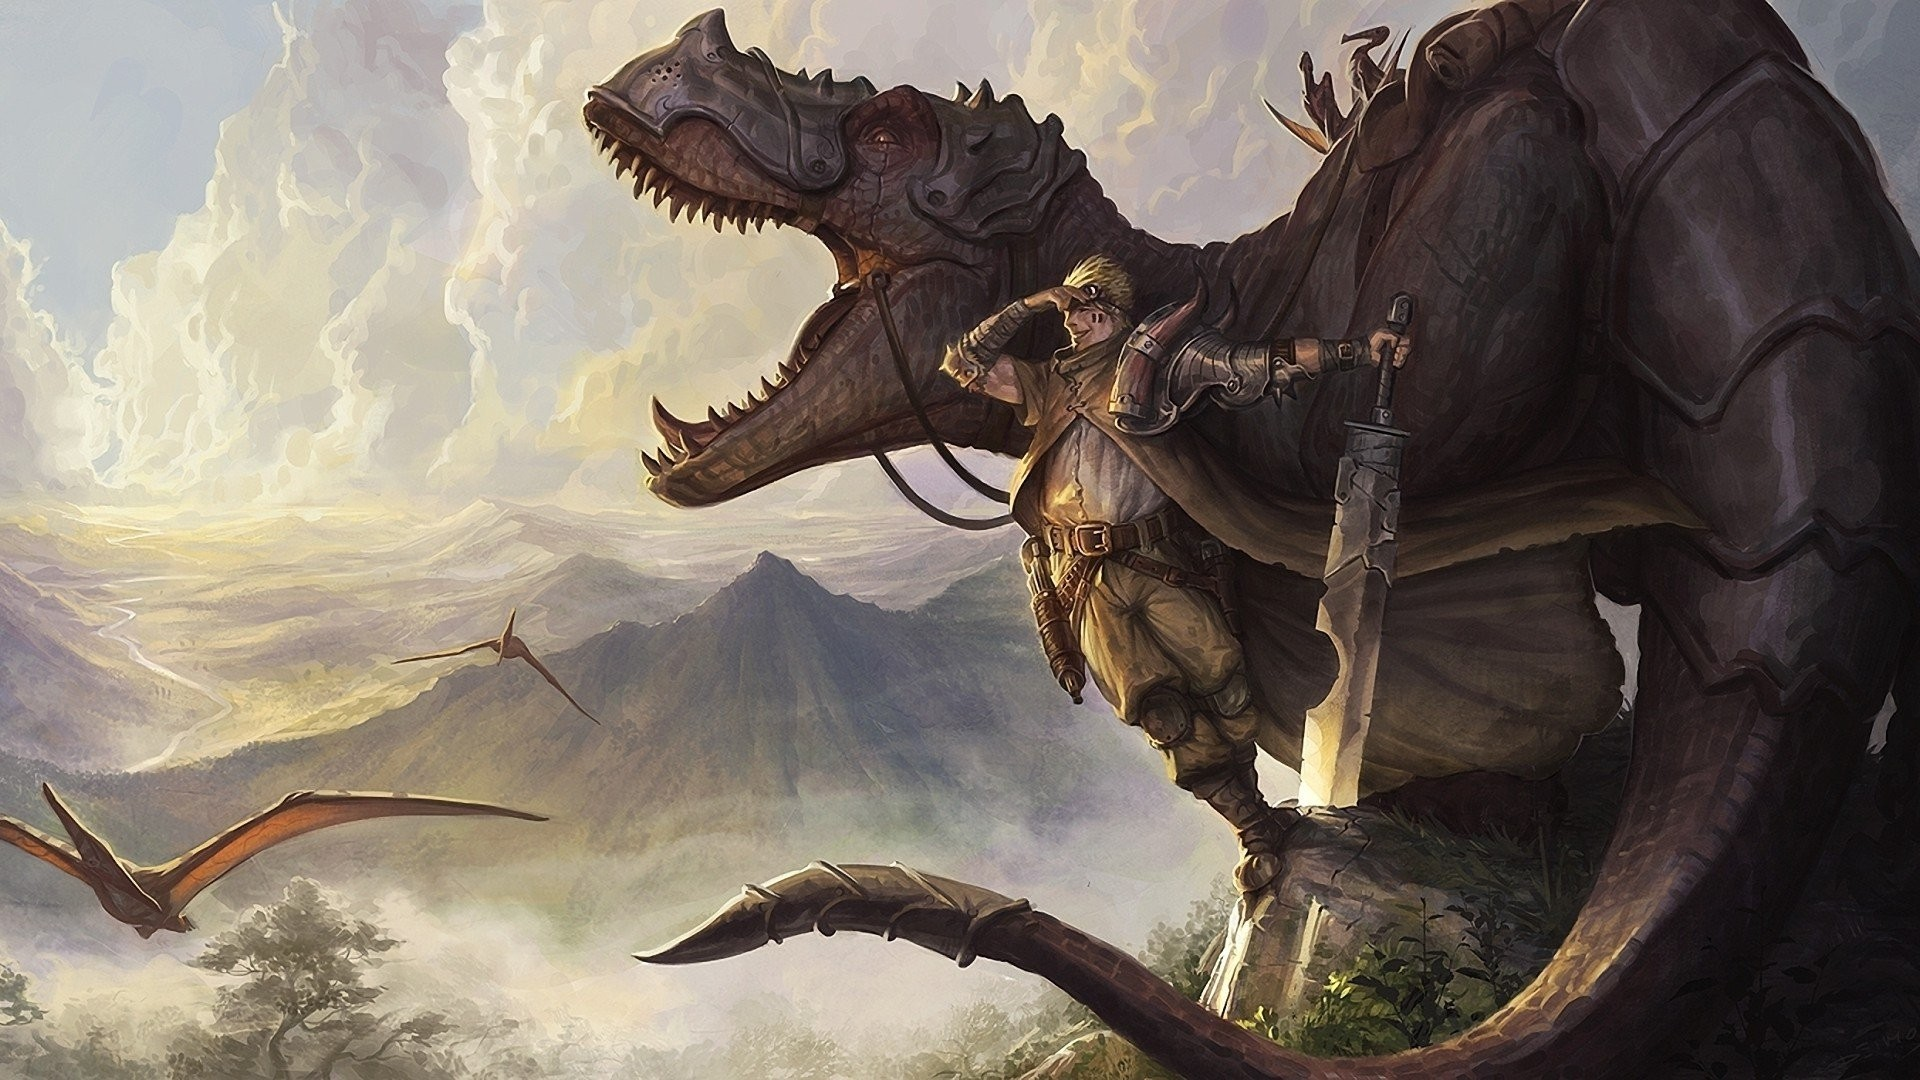 1920x1080 Dinosaurs Weapons Fantasy Art » WallDevil - Best free HD desktop and mobile  wallpapers